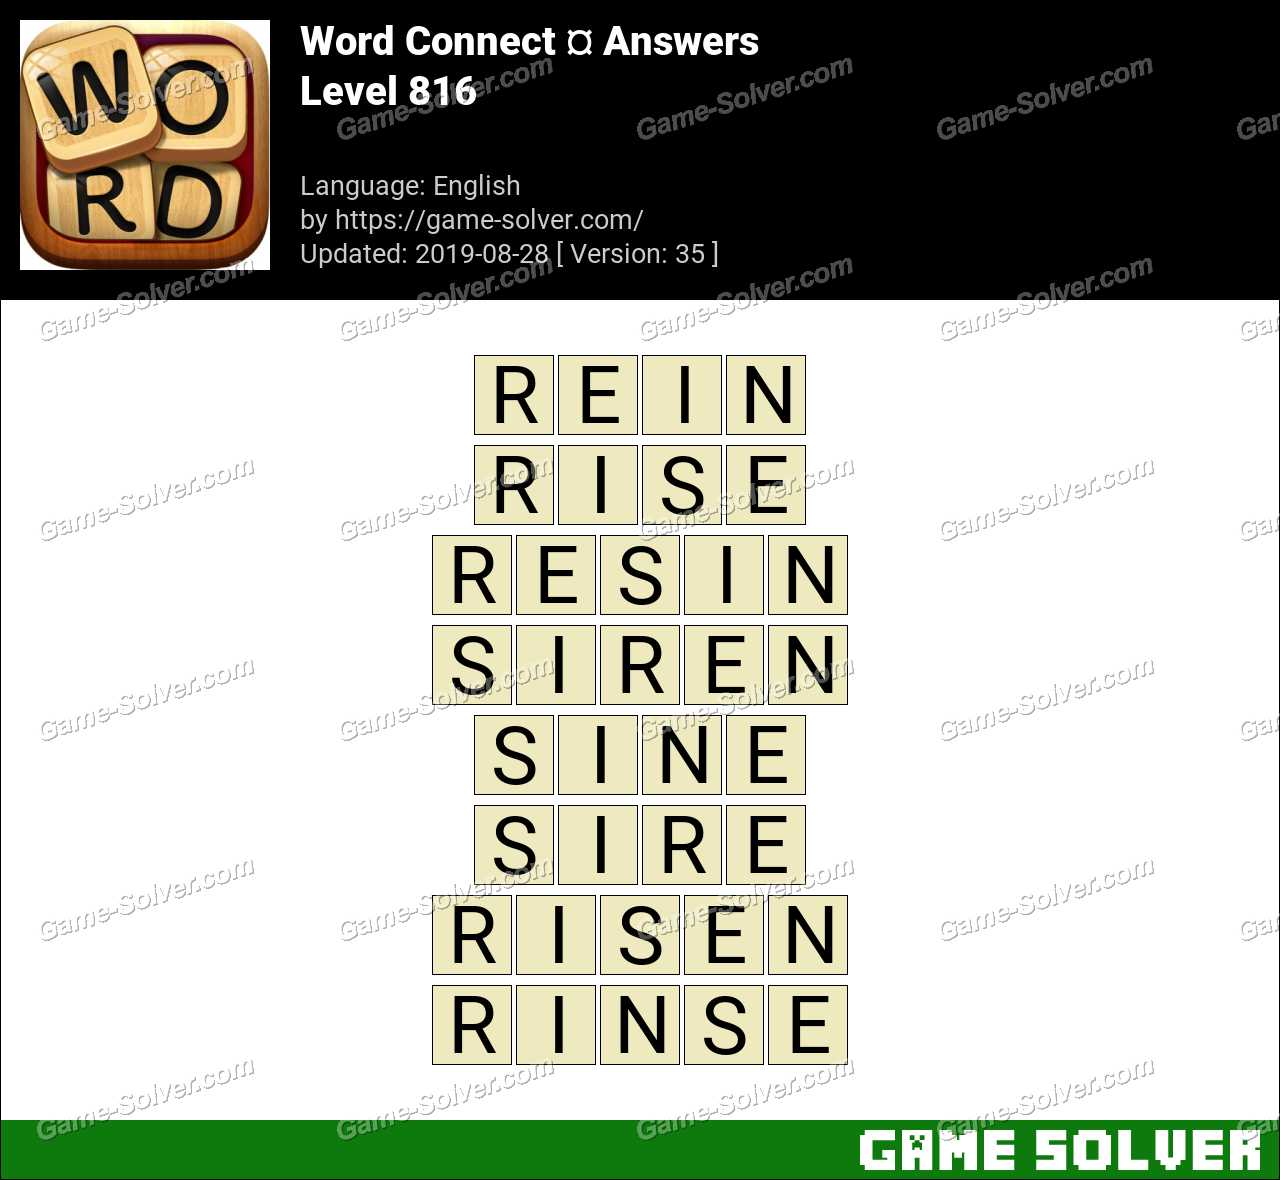 Word Connect Level 816 Answers